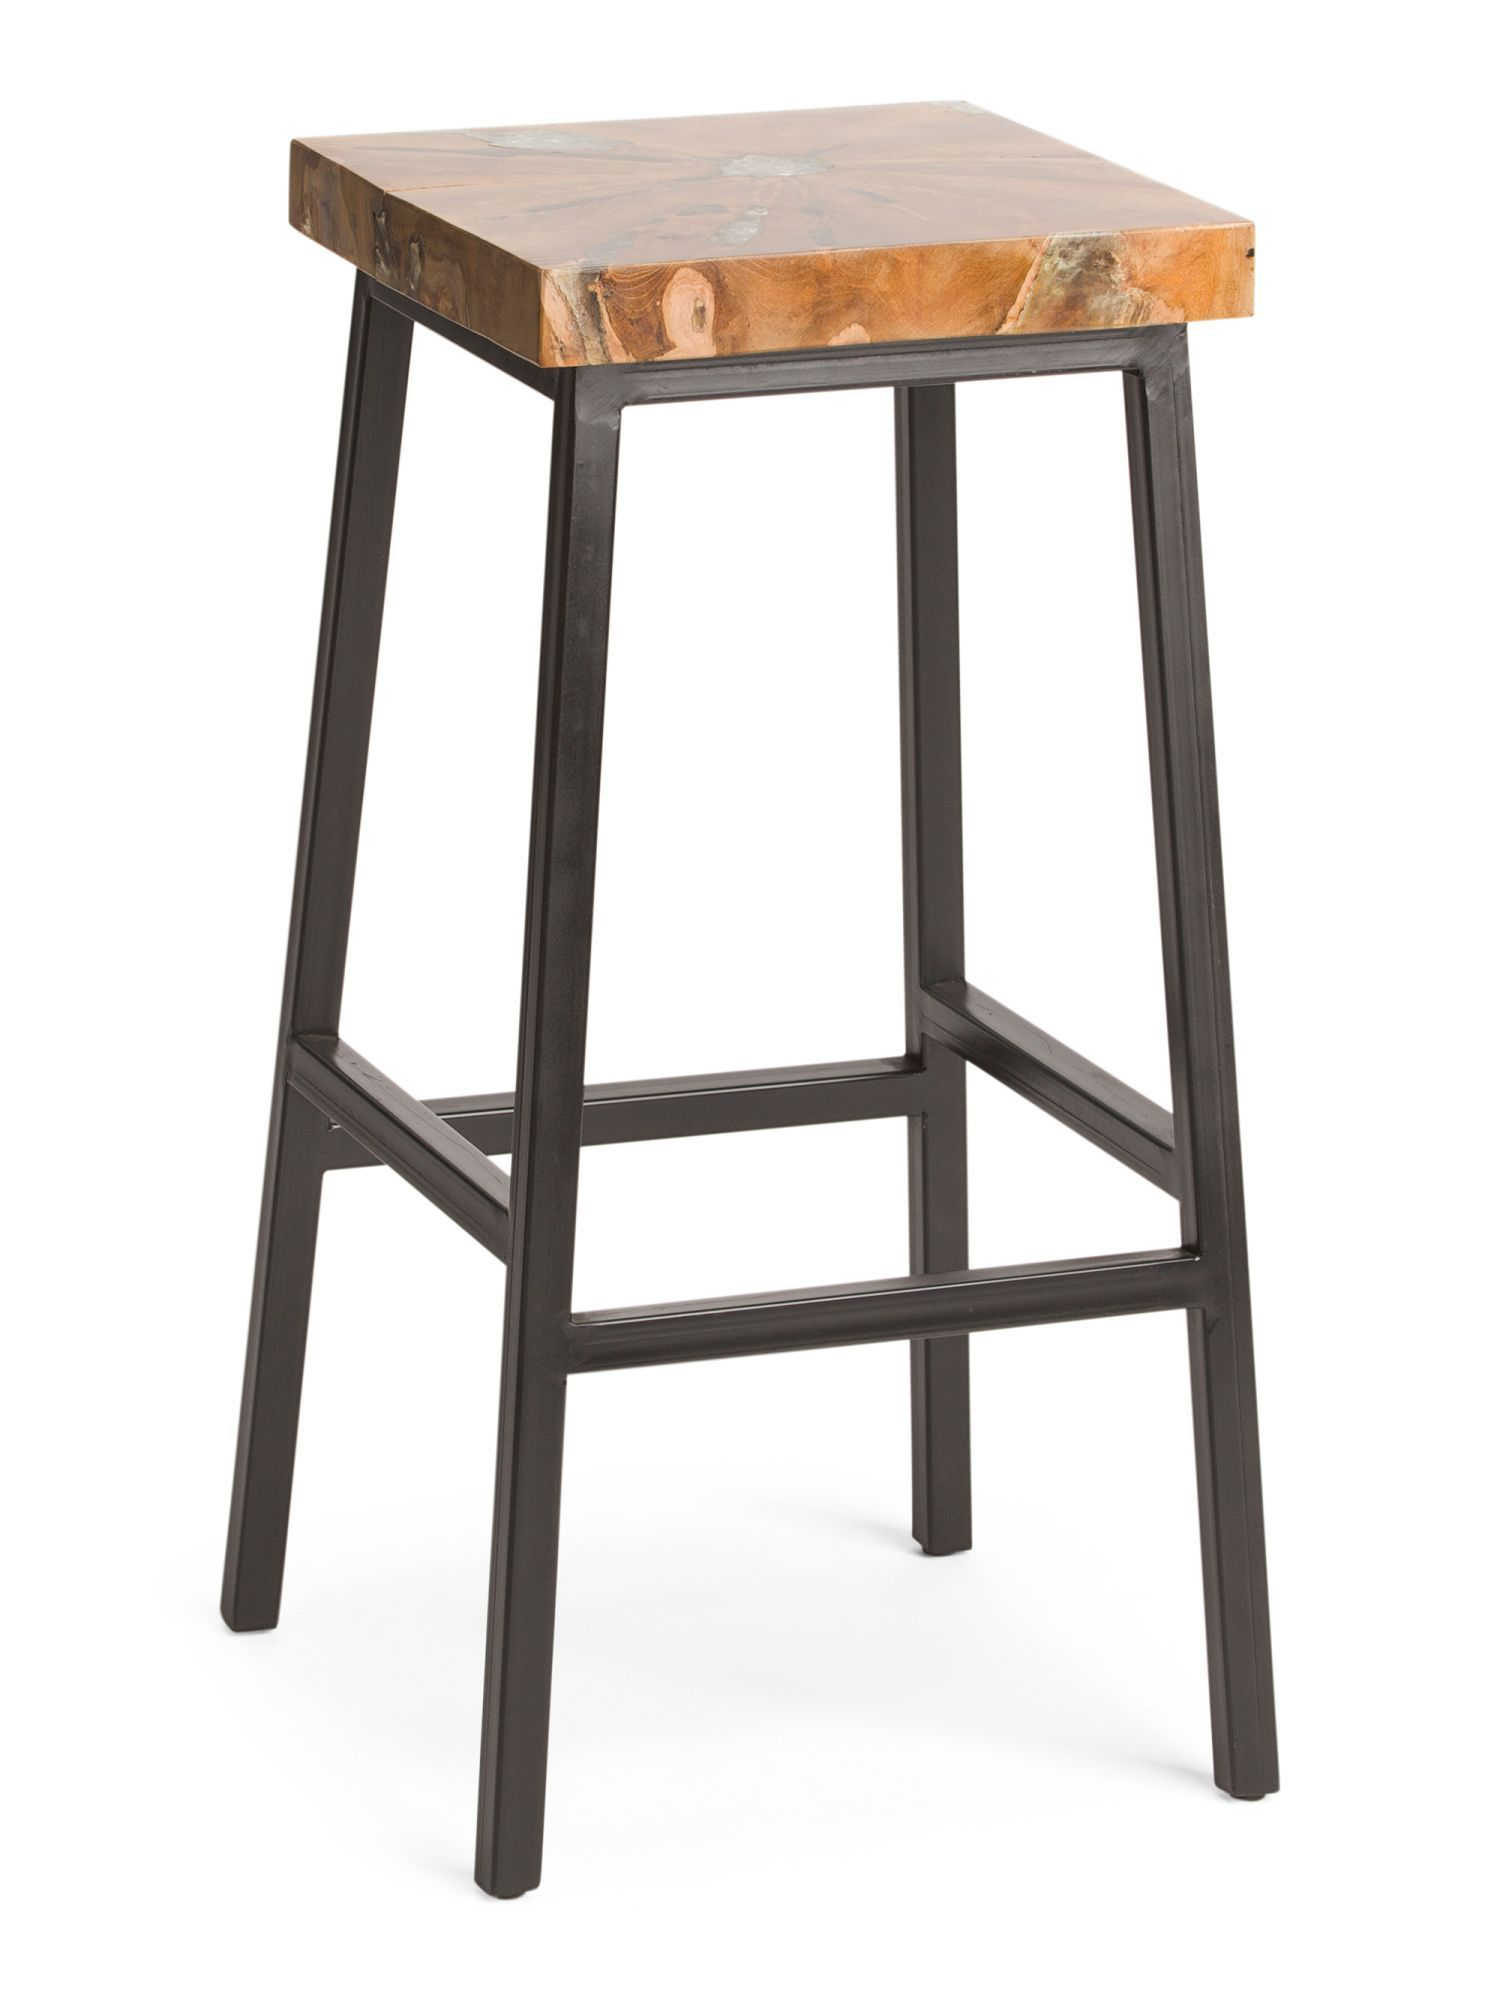 Awe Inspiring Teak Resin Barstool Products Bar Stools Accent Bralicious Painted Fabric Chair Ideas Braliciousco